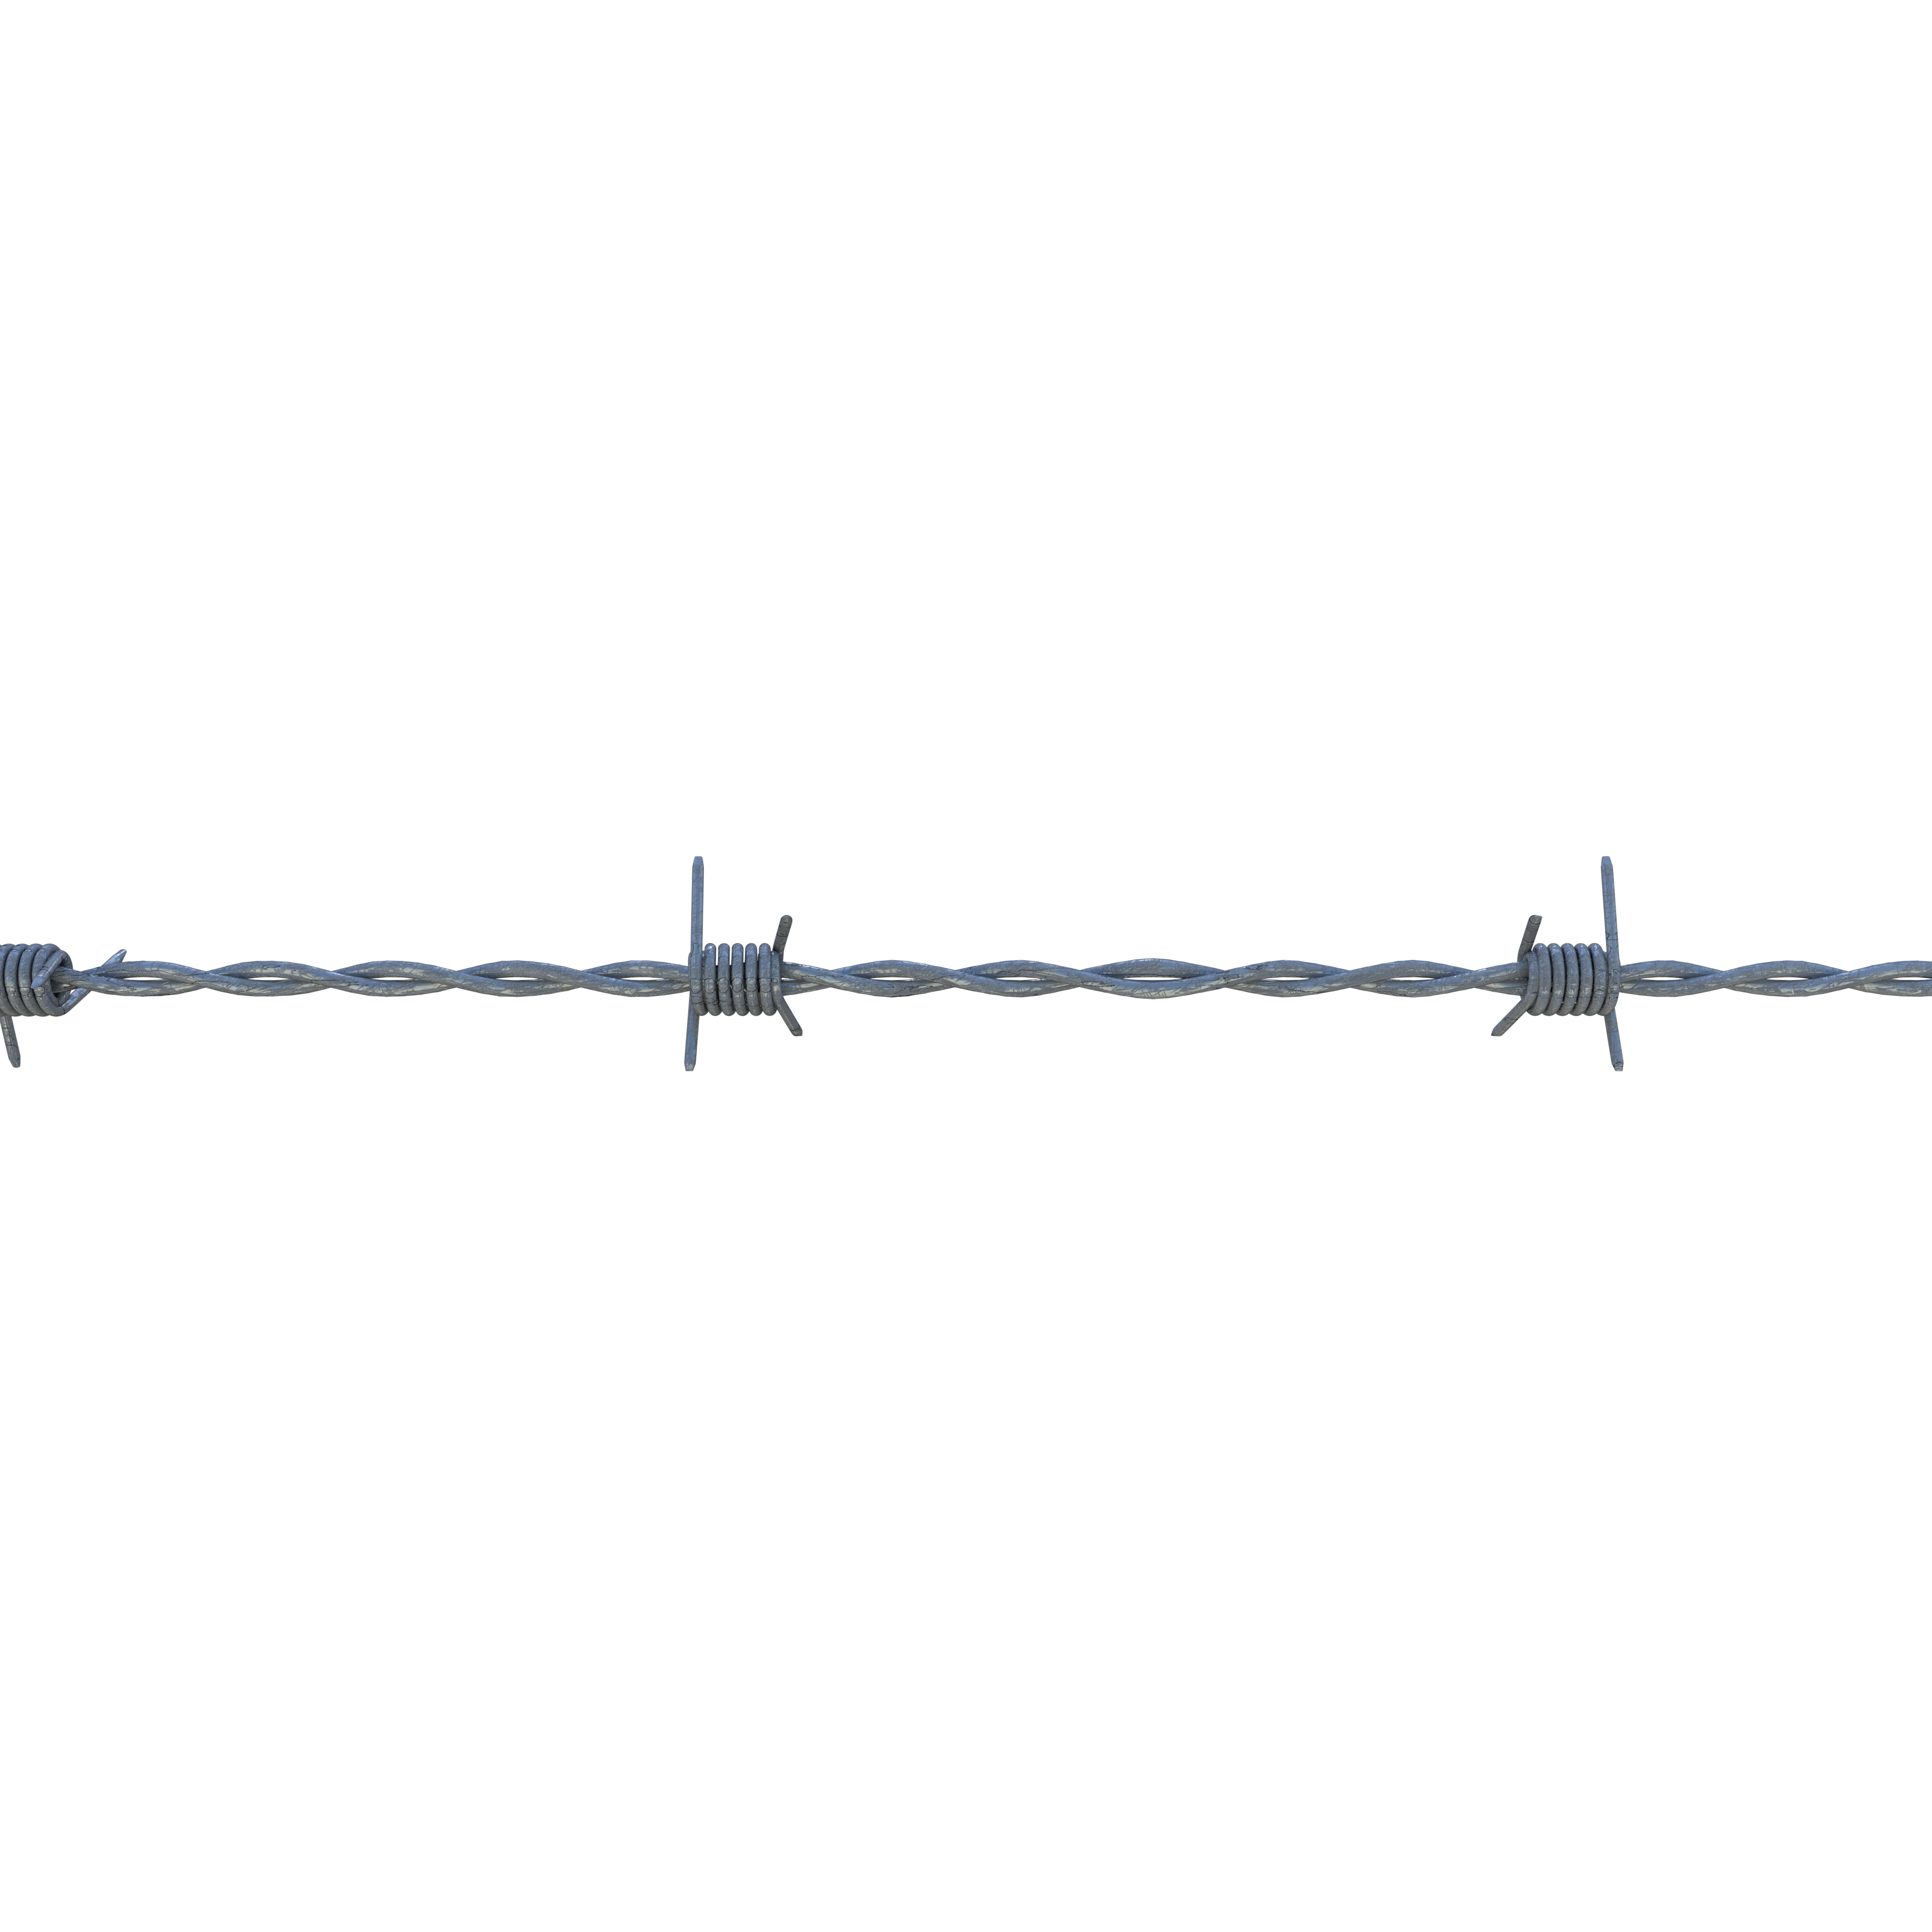 Free photo: Barb wire - wire, sharp, barb - Non-Commercial - Free ...